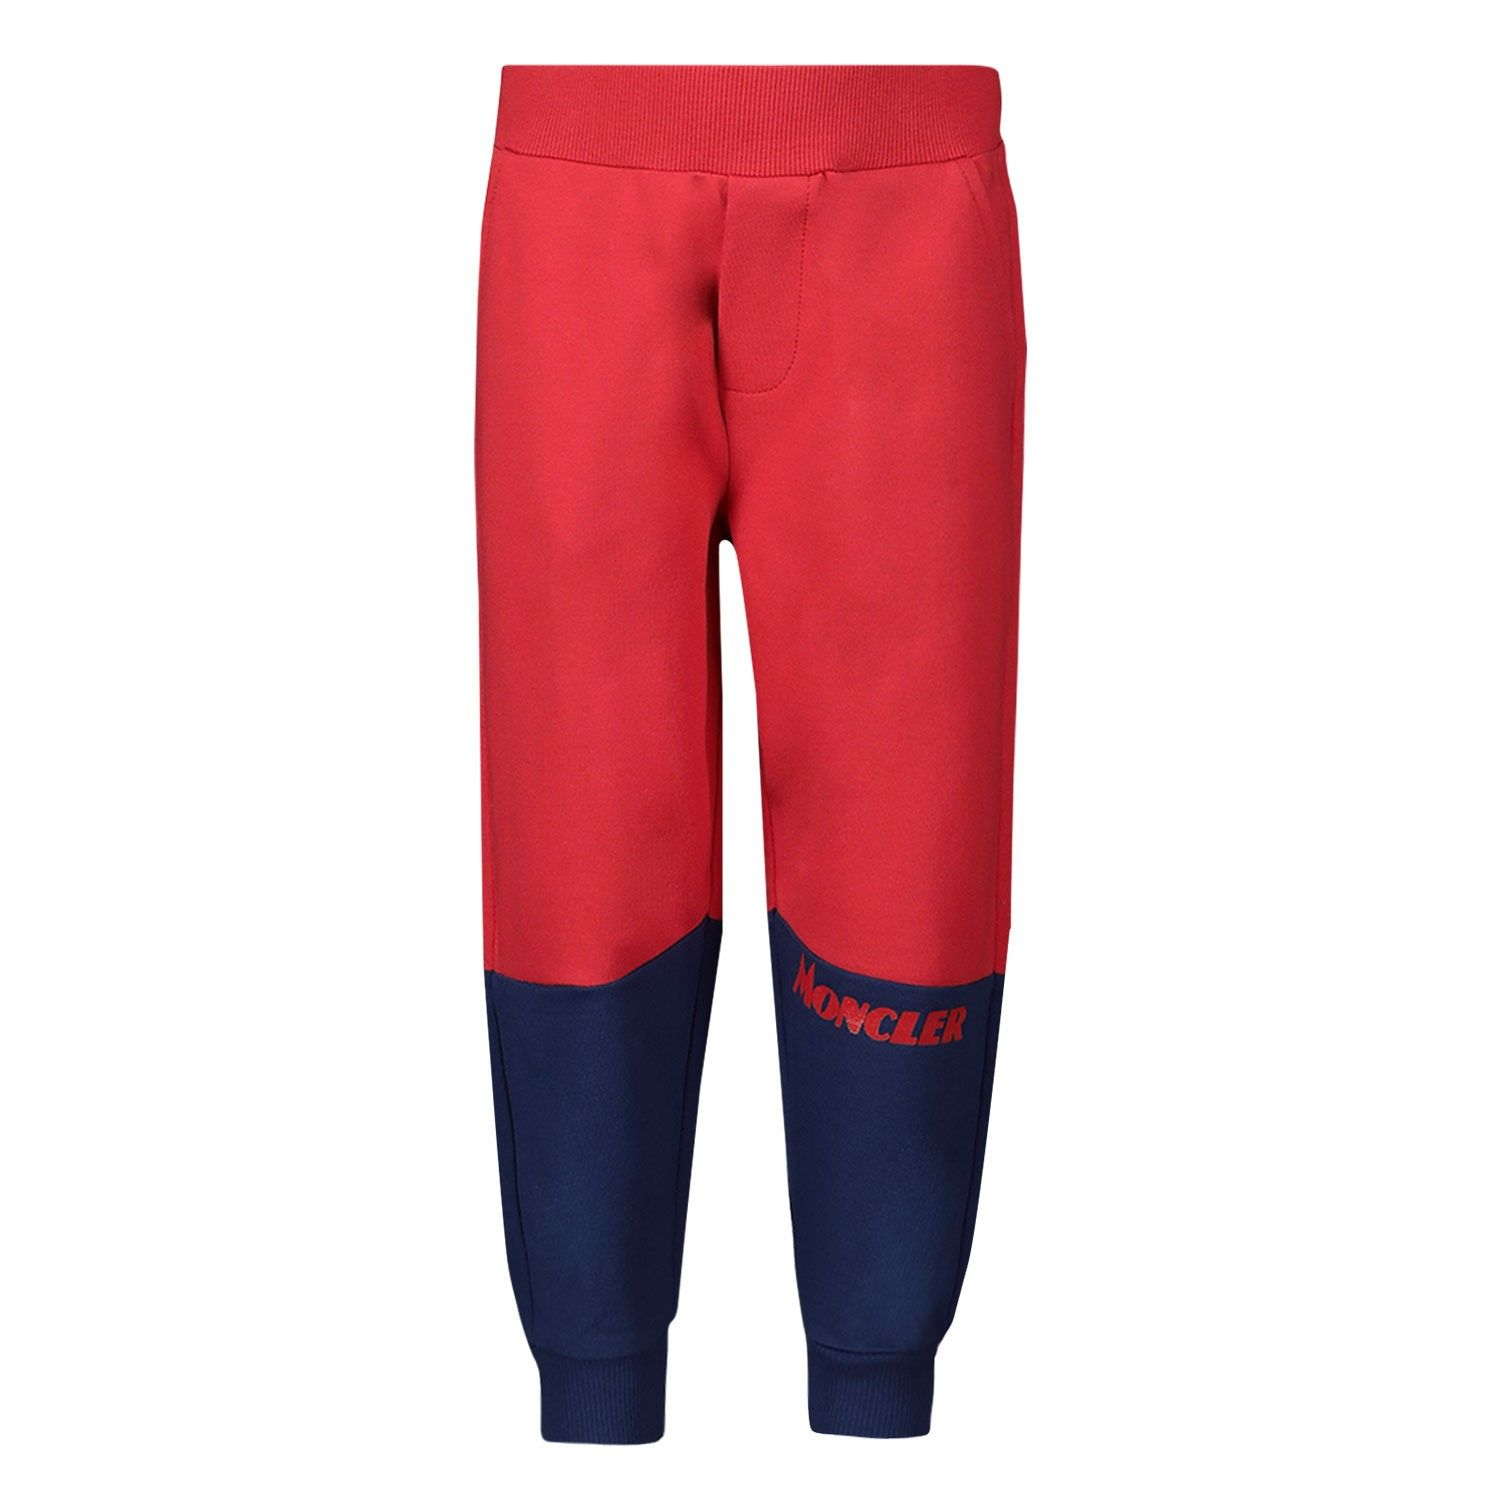 Picture of Moncler 8H70120 baby pants red